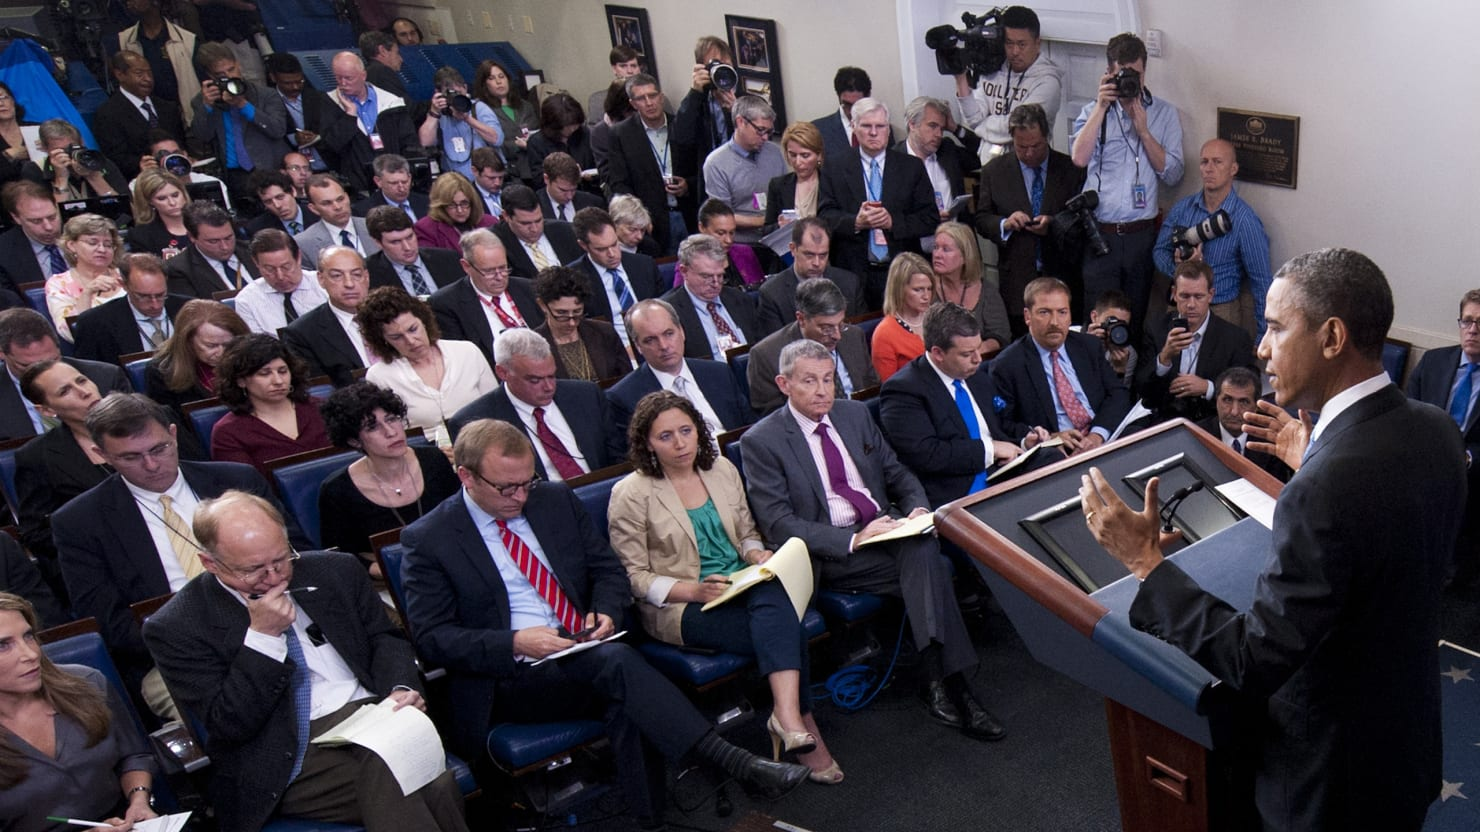 Obama's War on Journalism: 'An Unconstitutional Act'